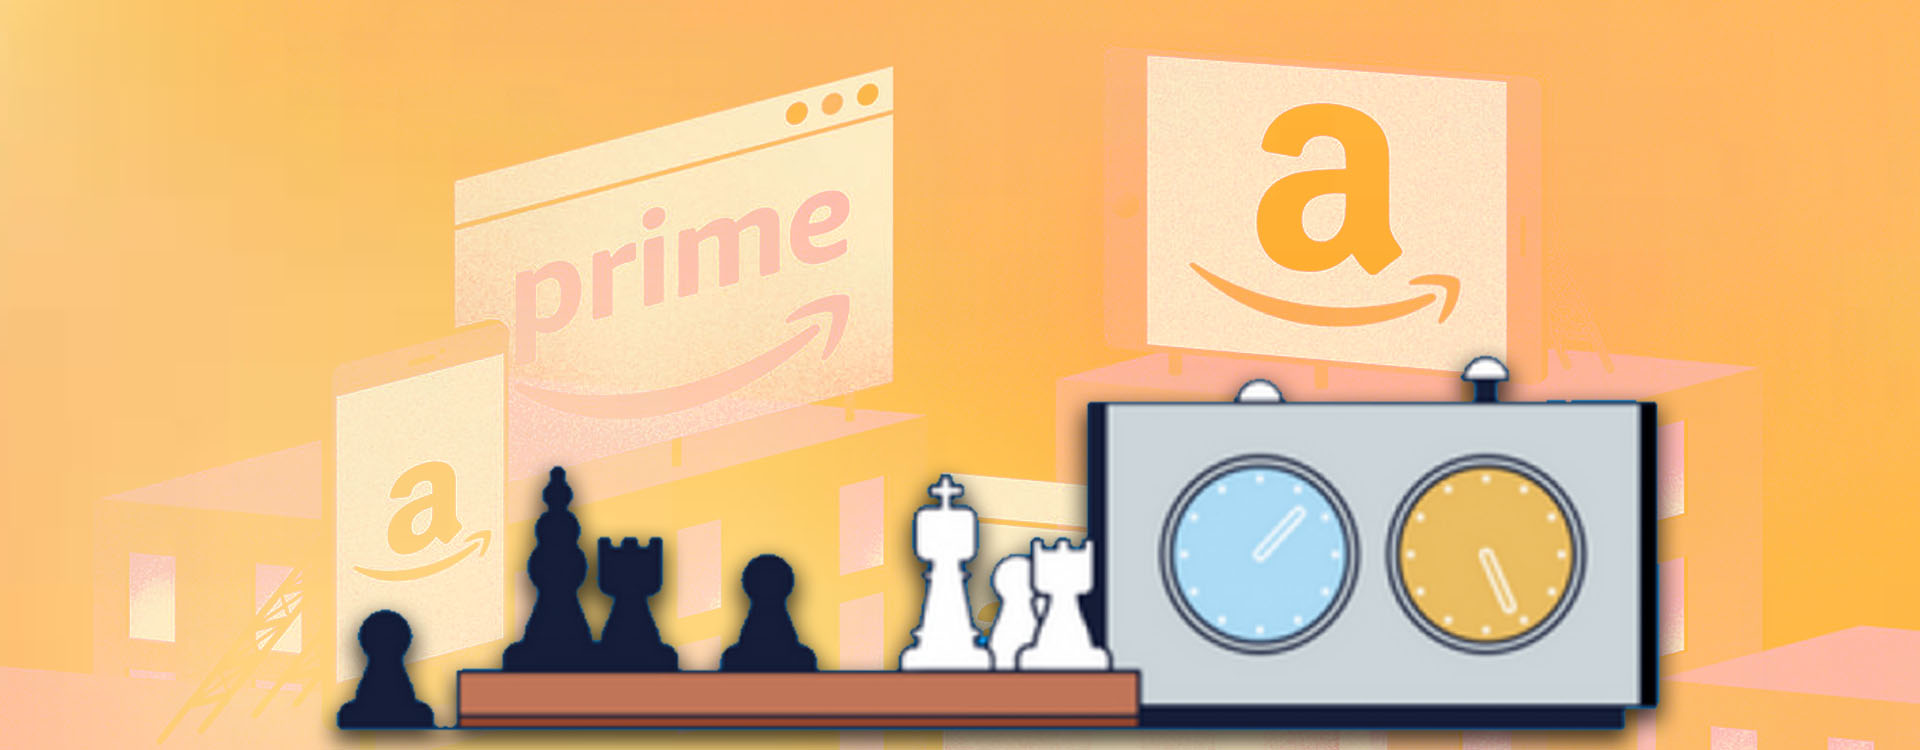 Top innovative products of Amazon